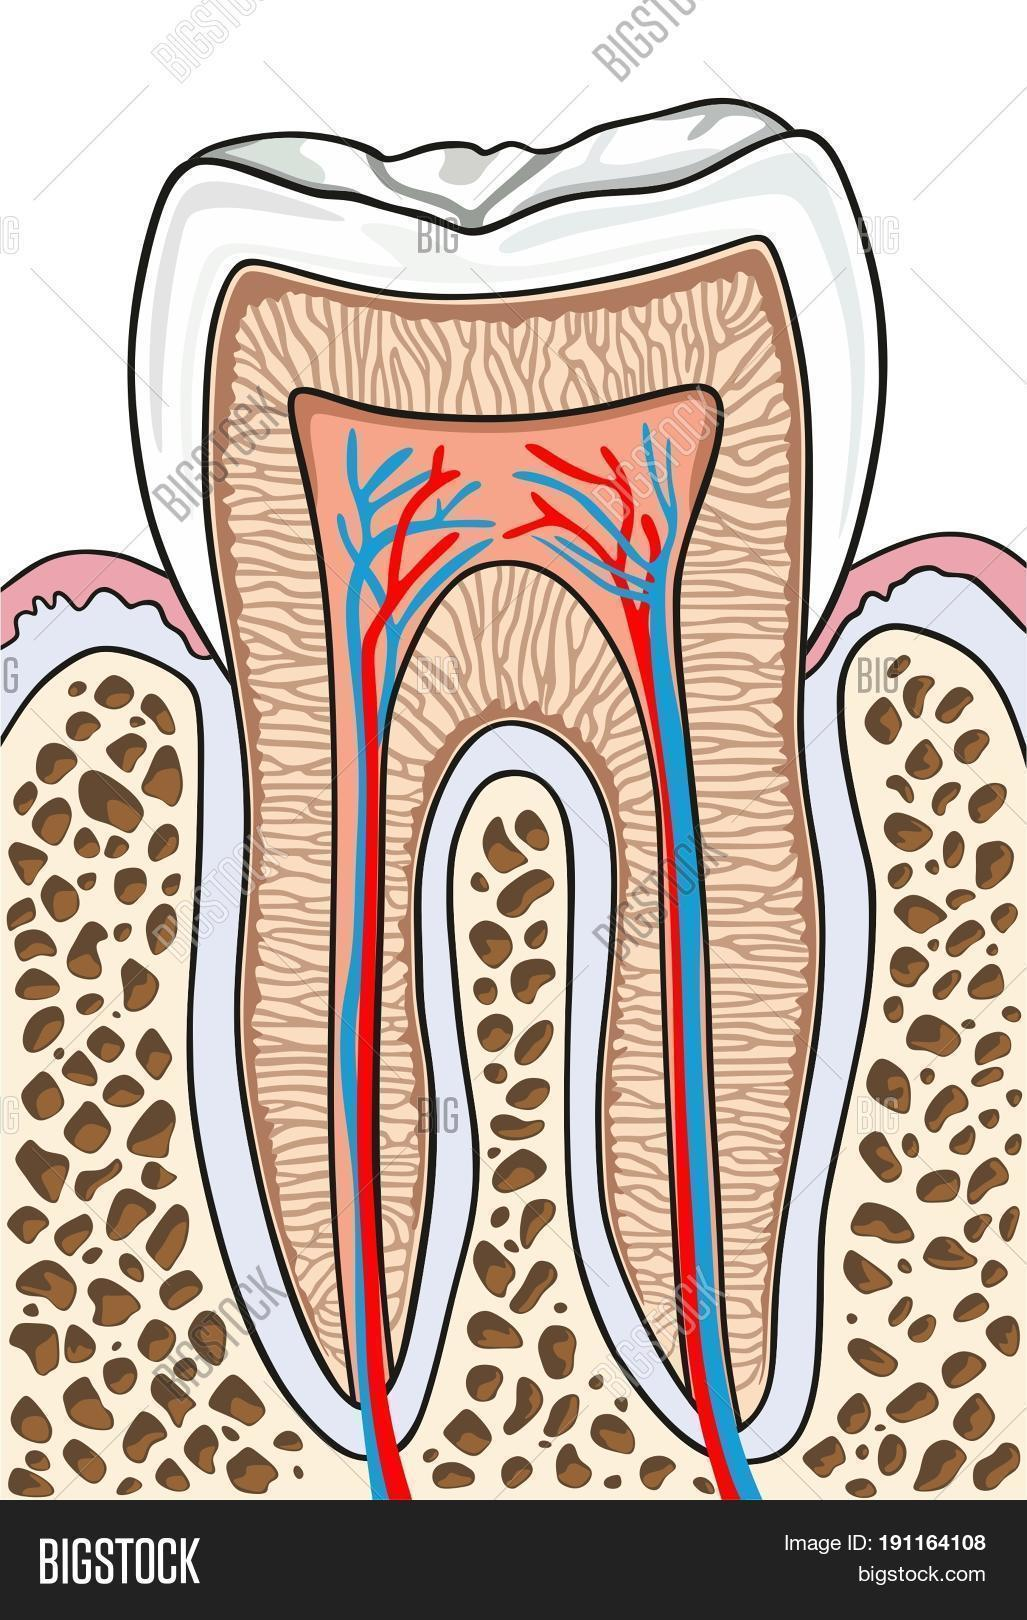 Tooth Cross Section Image Photo Free Trial Bigstock